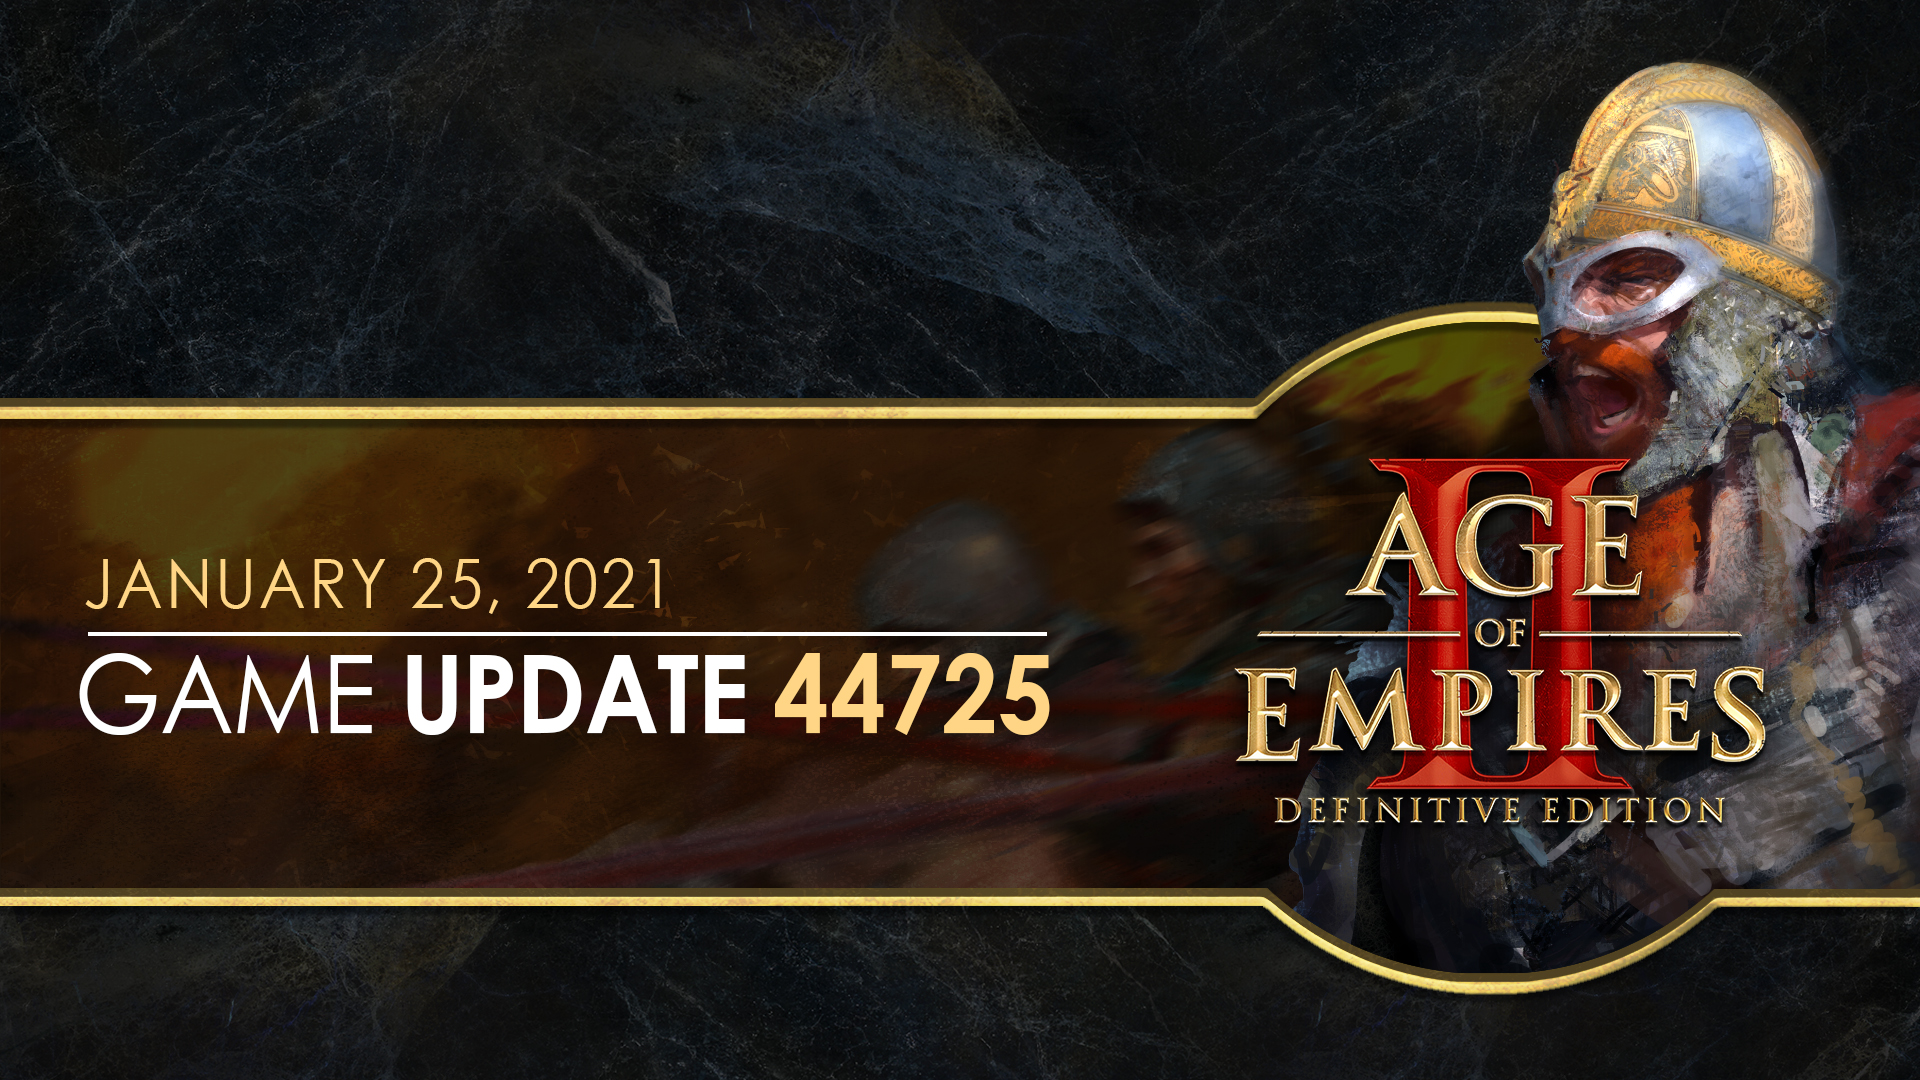 Age of empires 2 online flash game download shrek 2 game for pc